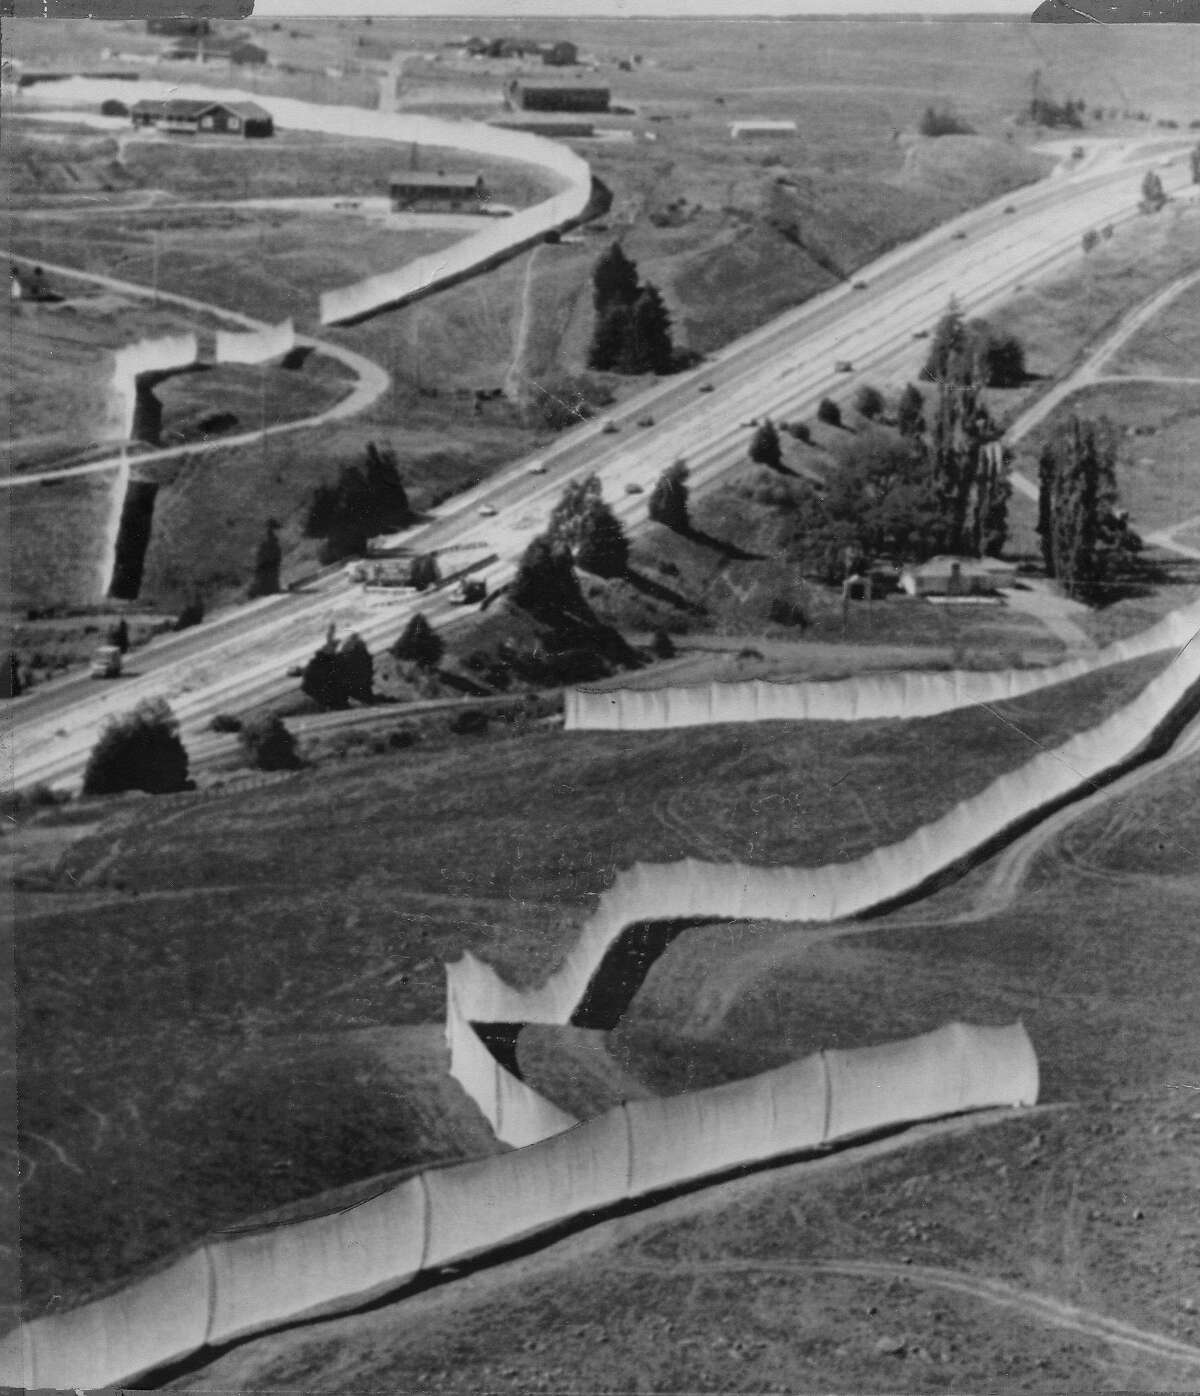 New York artist Christo Javacheff pulls off his project after 42 months of meetings: a 24 mile long running fence. Seen here in Petaluma on both sides of Highway 101 September 9, 1976 Associated Press photo